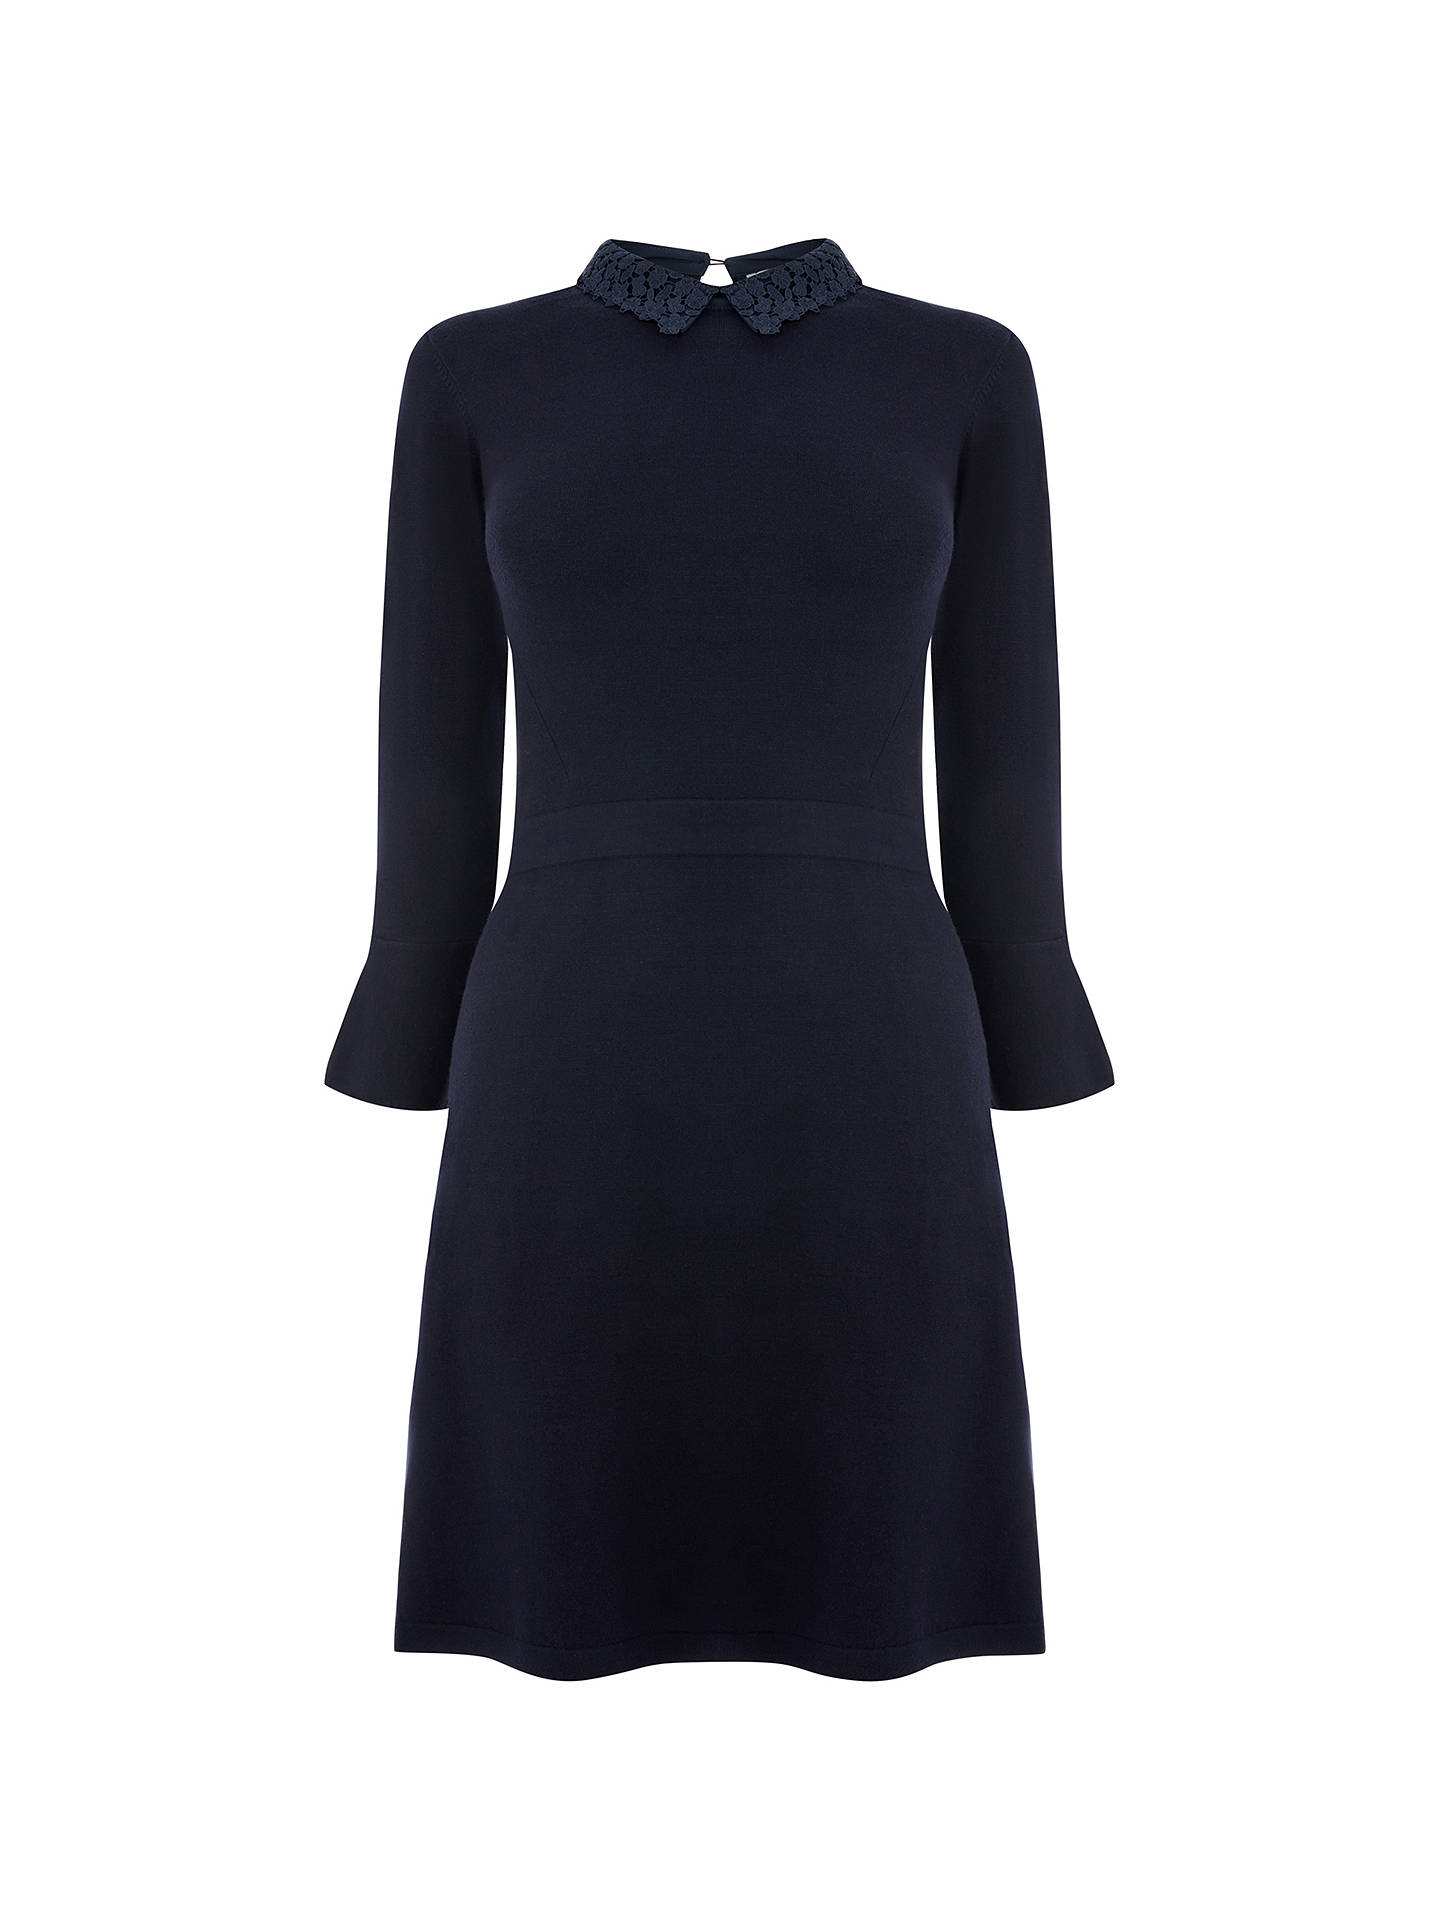 BuyWarehouse Lace Collar Flare Cuff Dress, Navy, 6 Online at johnlewis.com